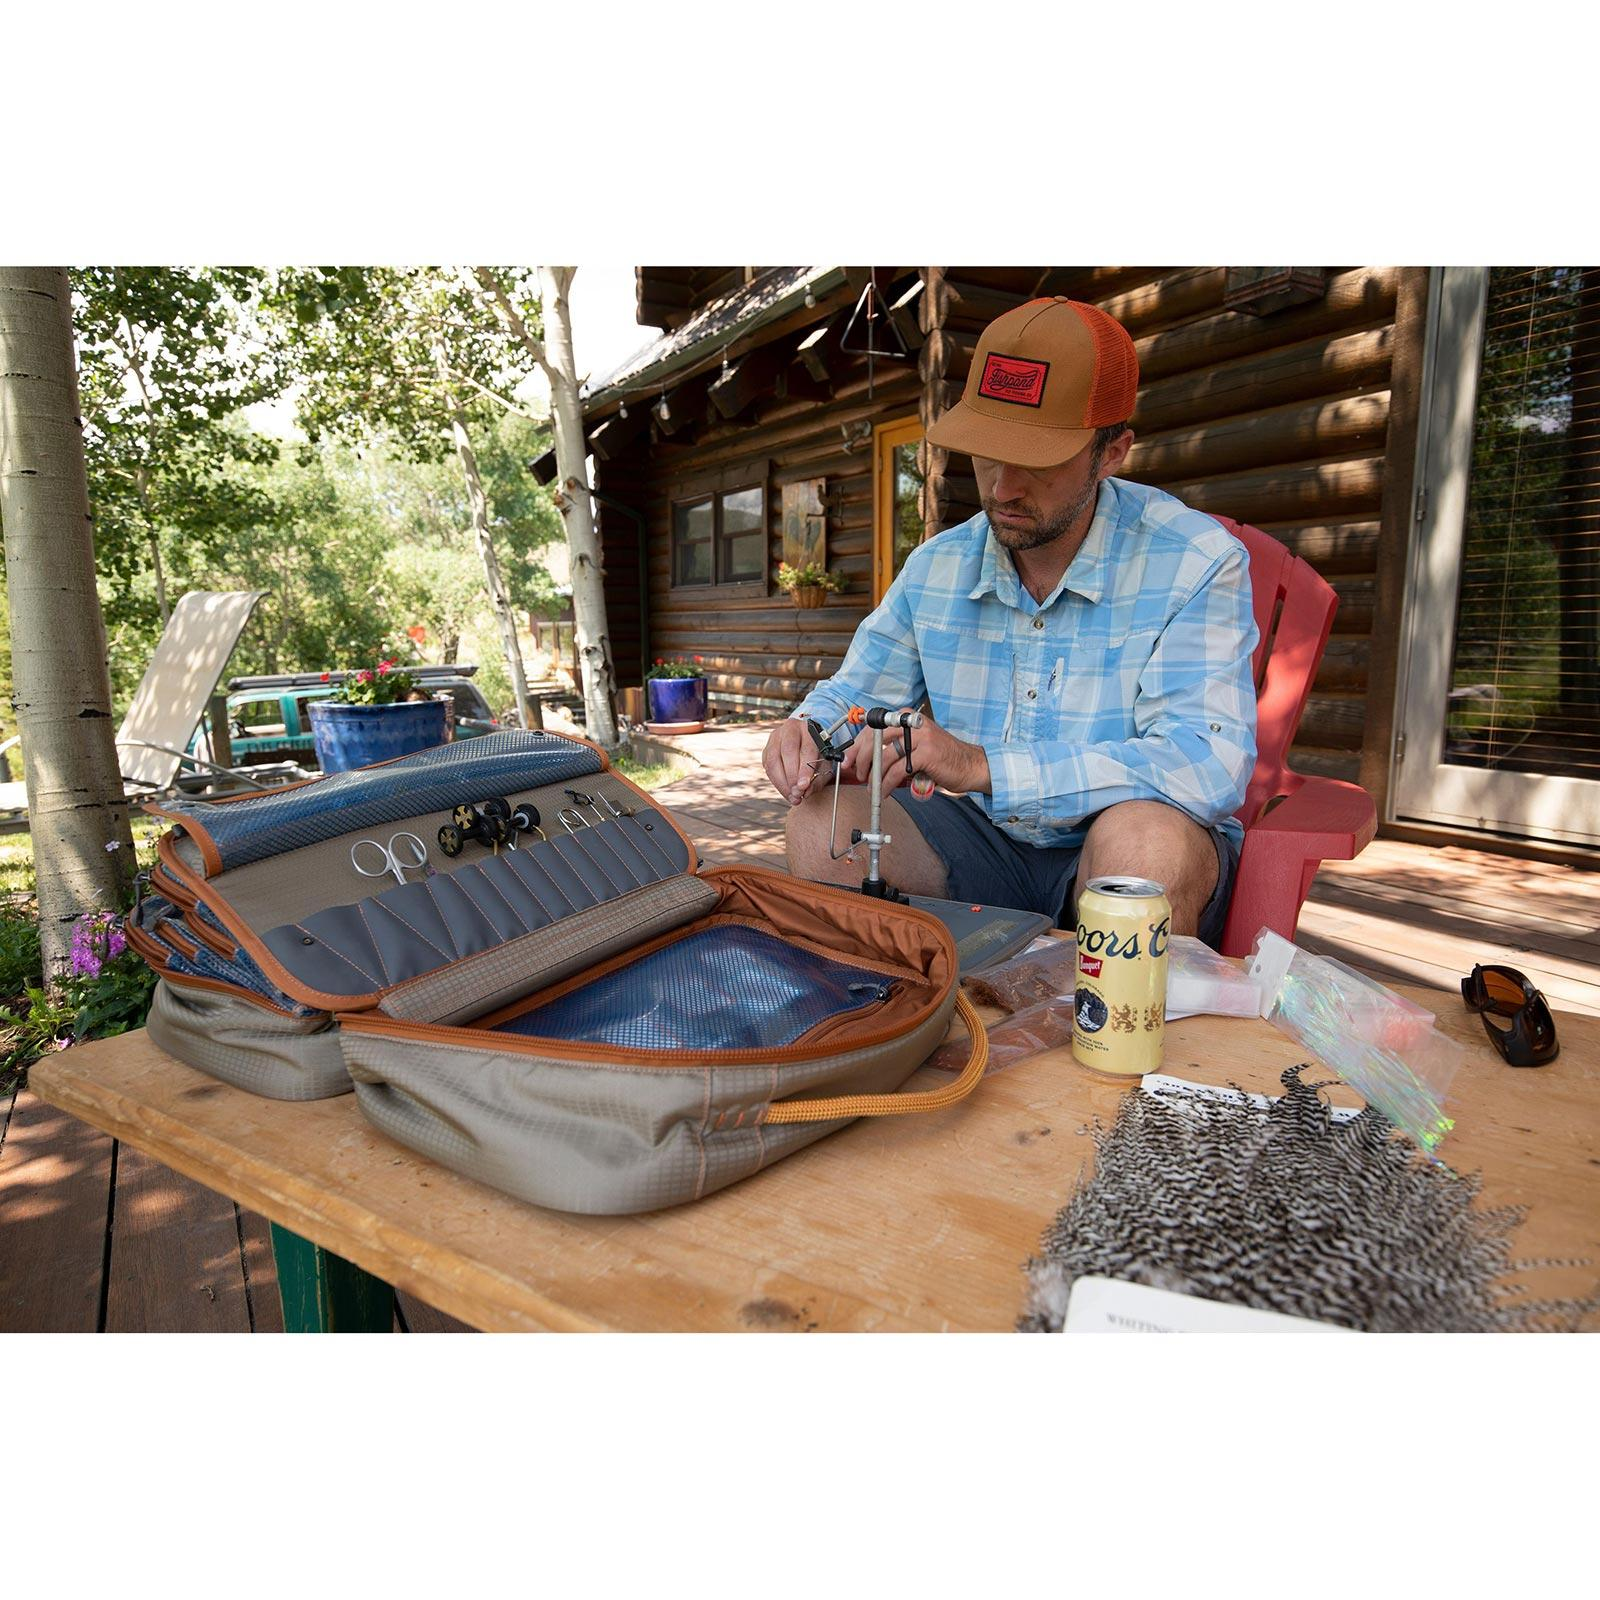 Fishpond Tailwater Fly Tying Kit In Use View